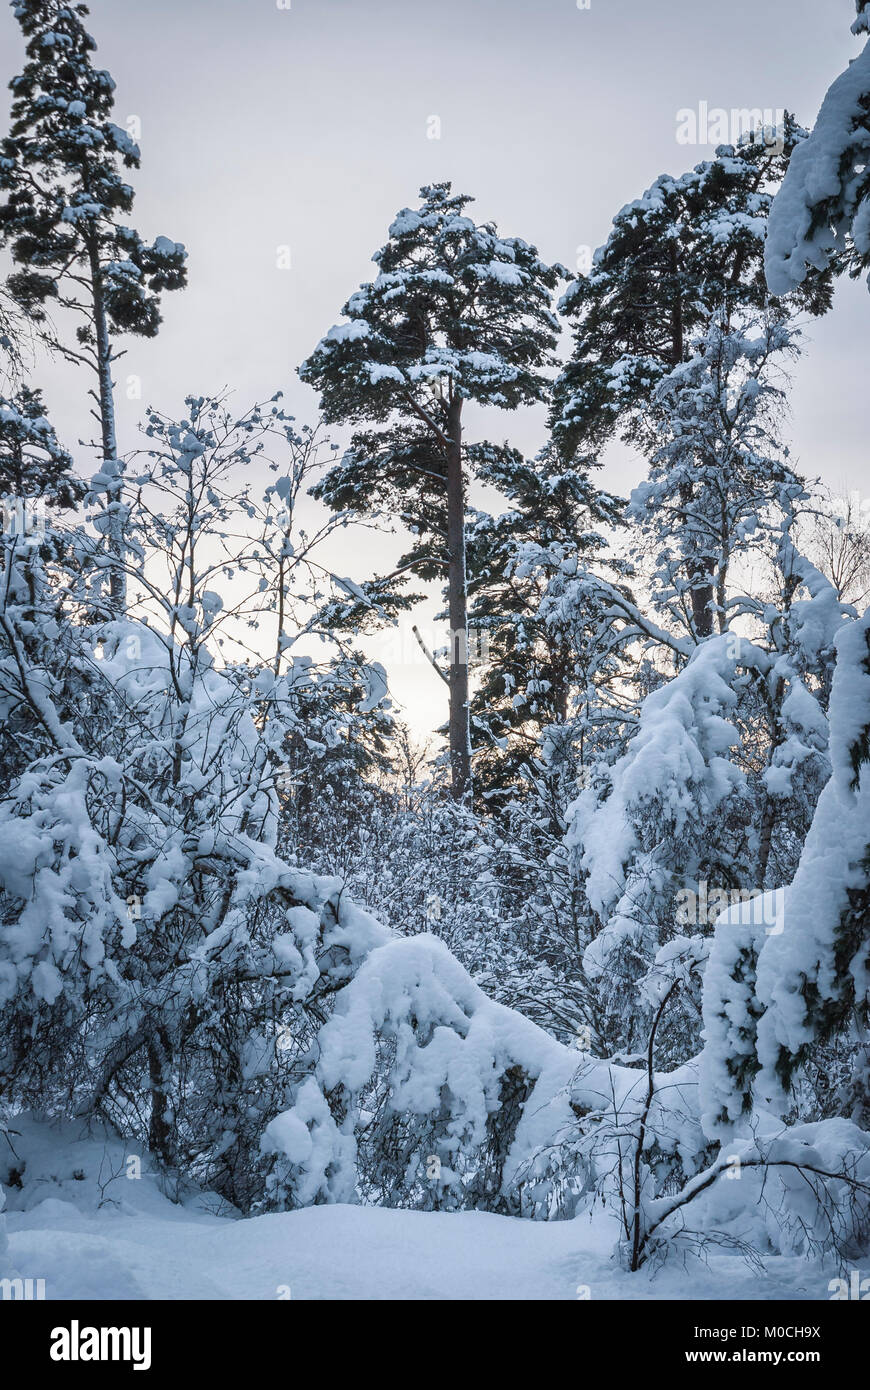 Nethybridge woodland covered in heavy snow at christmas. December 2009 - Stock Image